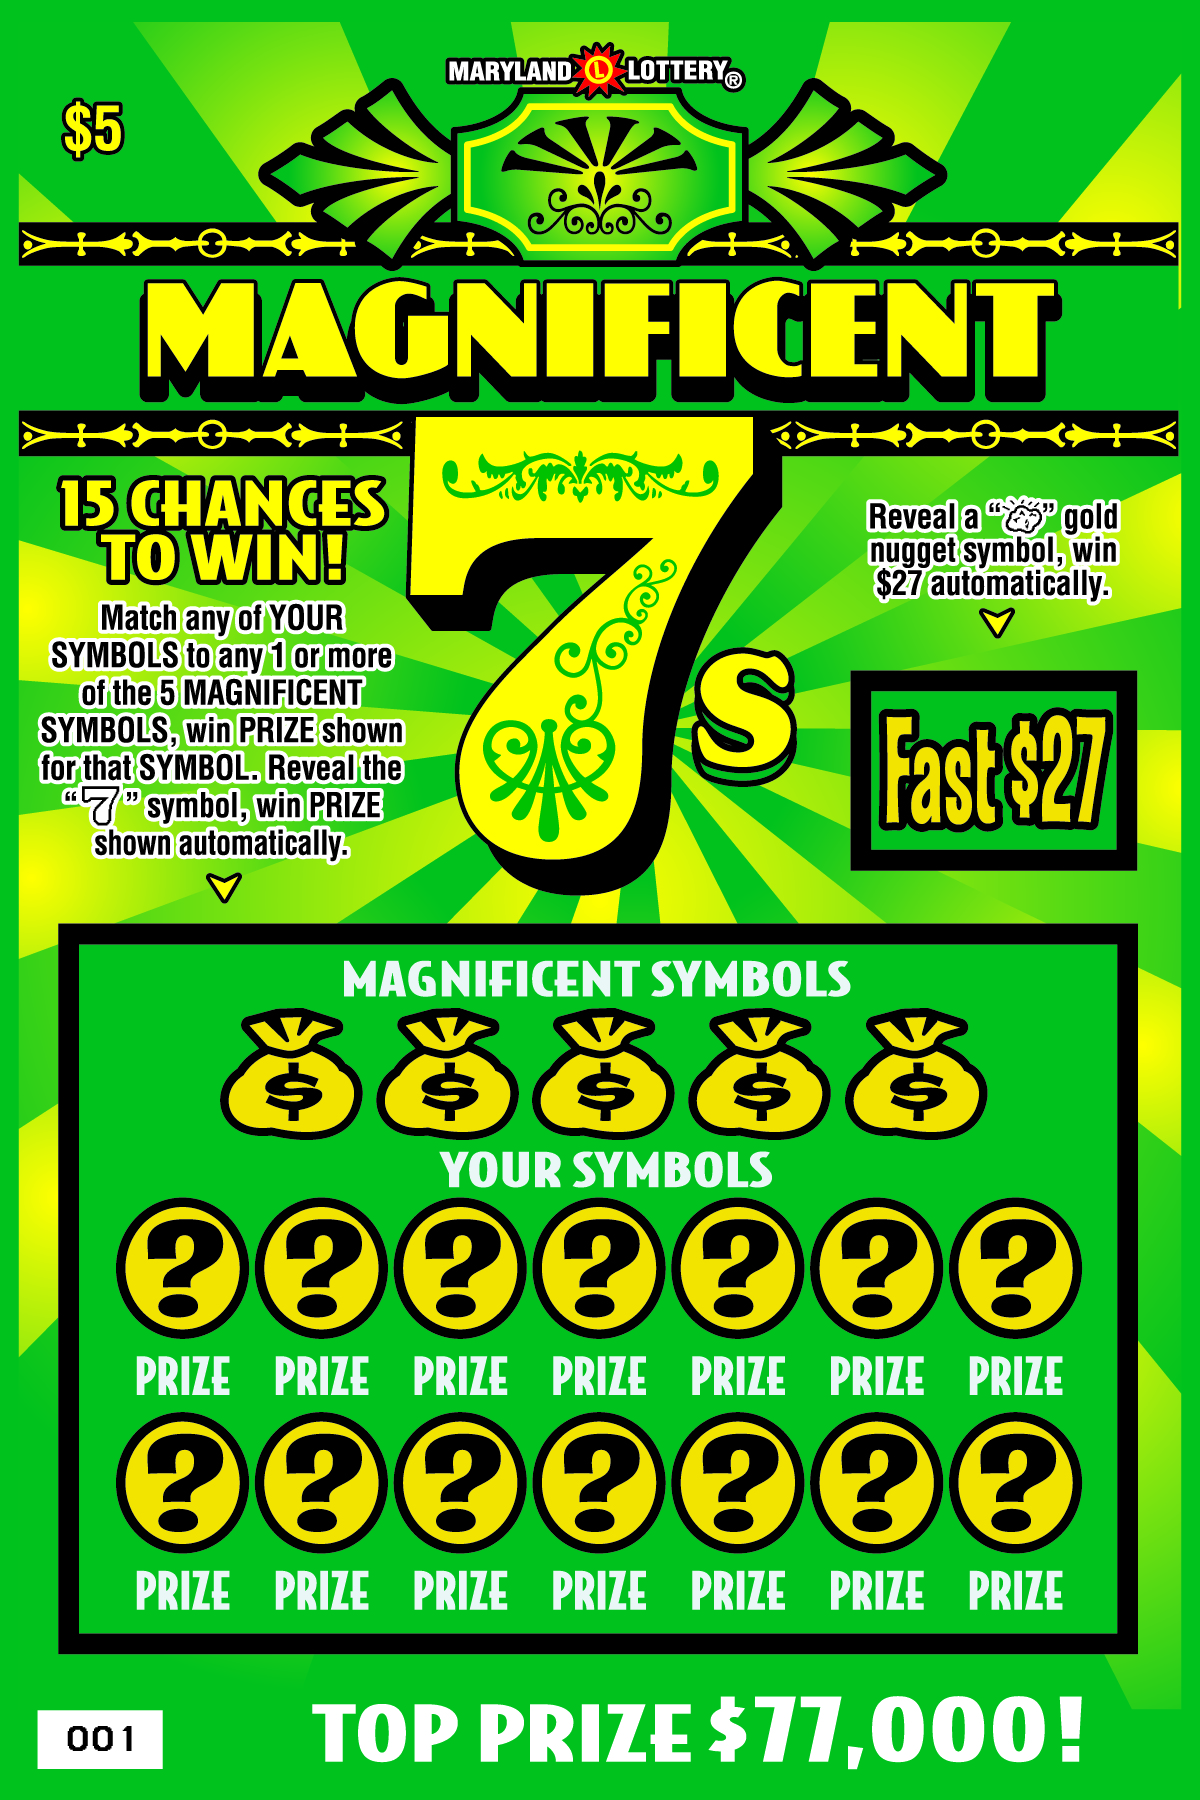 Scratch Off 92 Football Grounds Print: Extreme Cash Blast